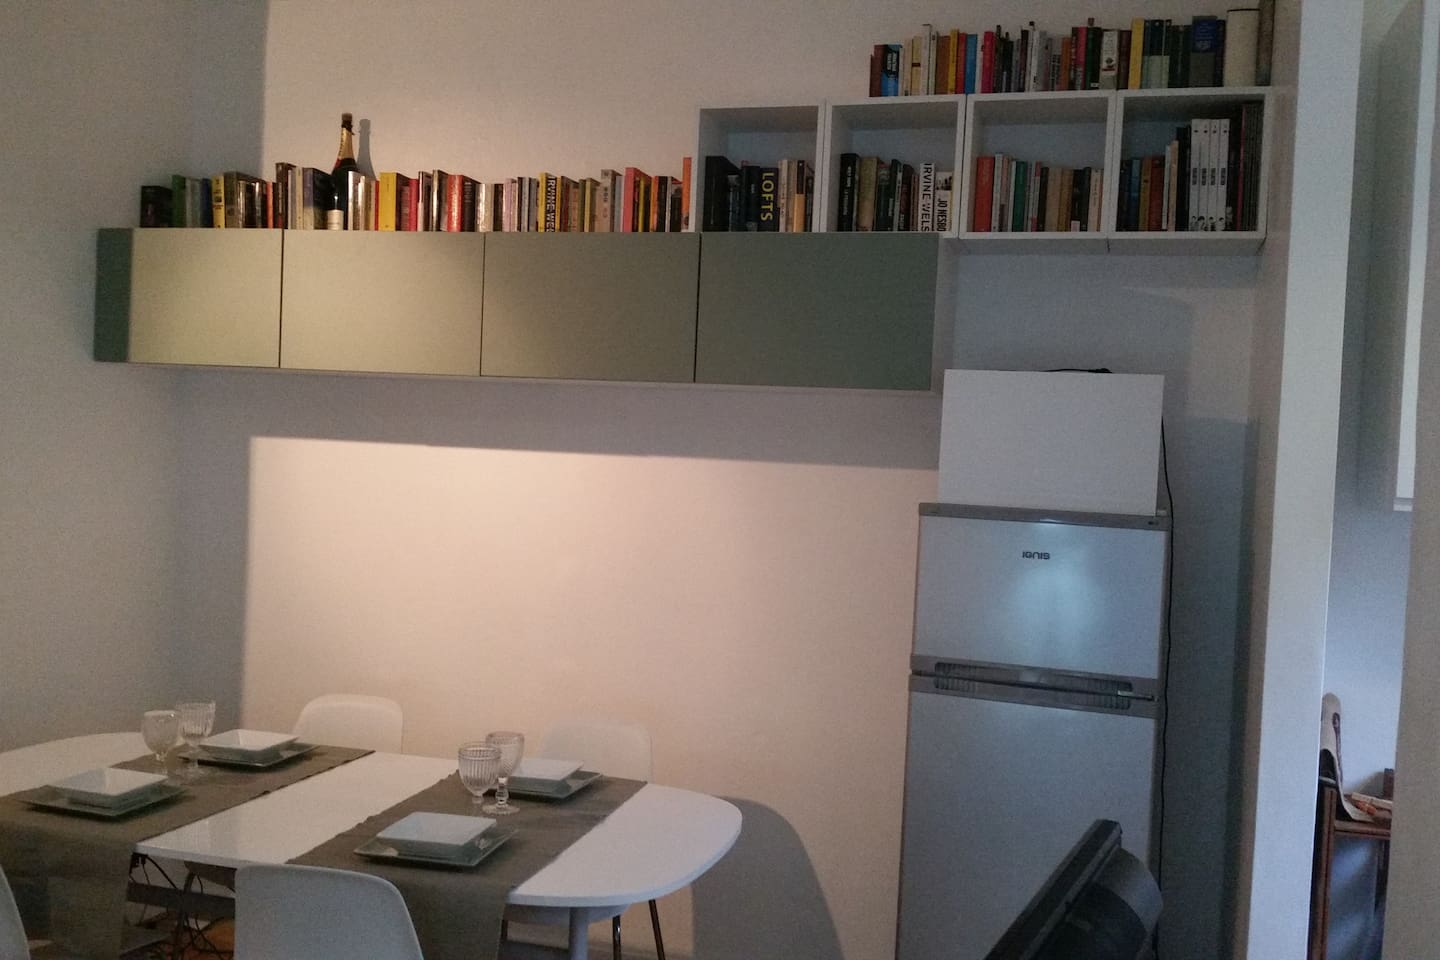 Dining table seating 4, wall cabinets holding assortment of glassware, crockery, plates, tablecloths and all that you need. Ample library with books in Italian & English. Microwave above fridge.